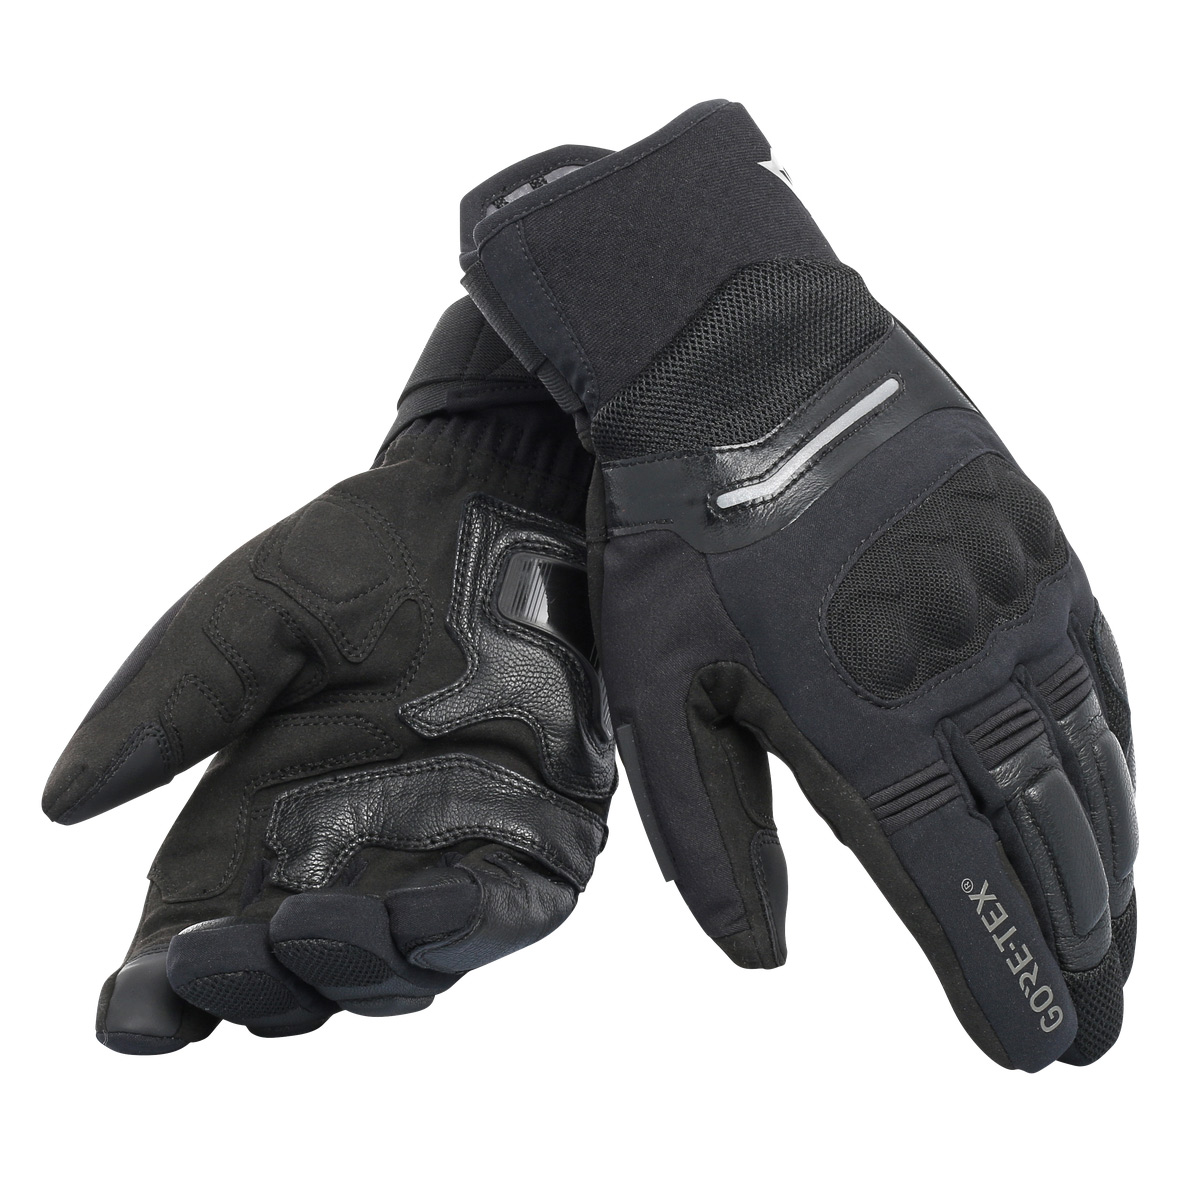 Dainese Solarys Short Gore-tex Gloves